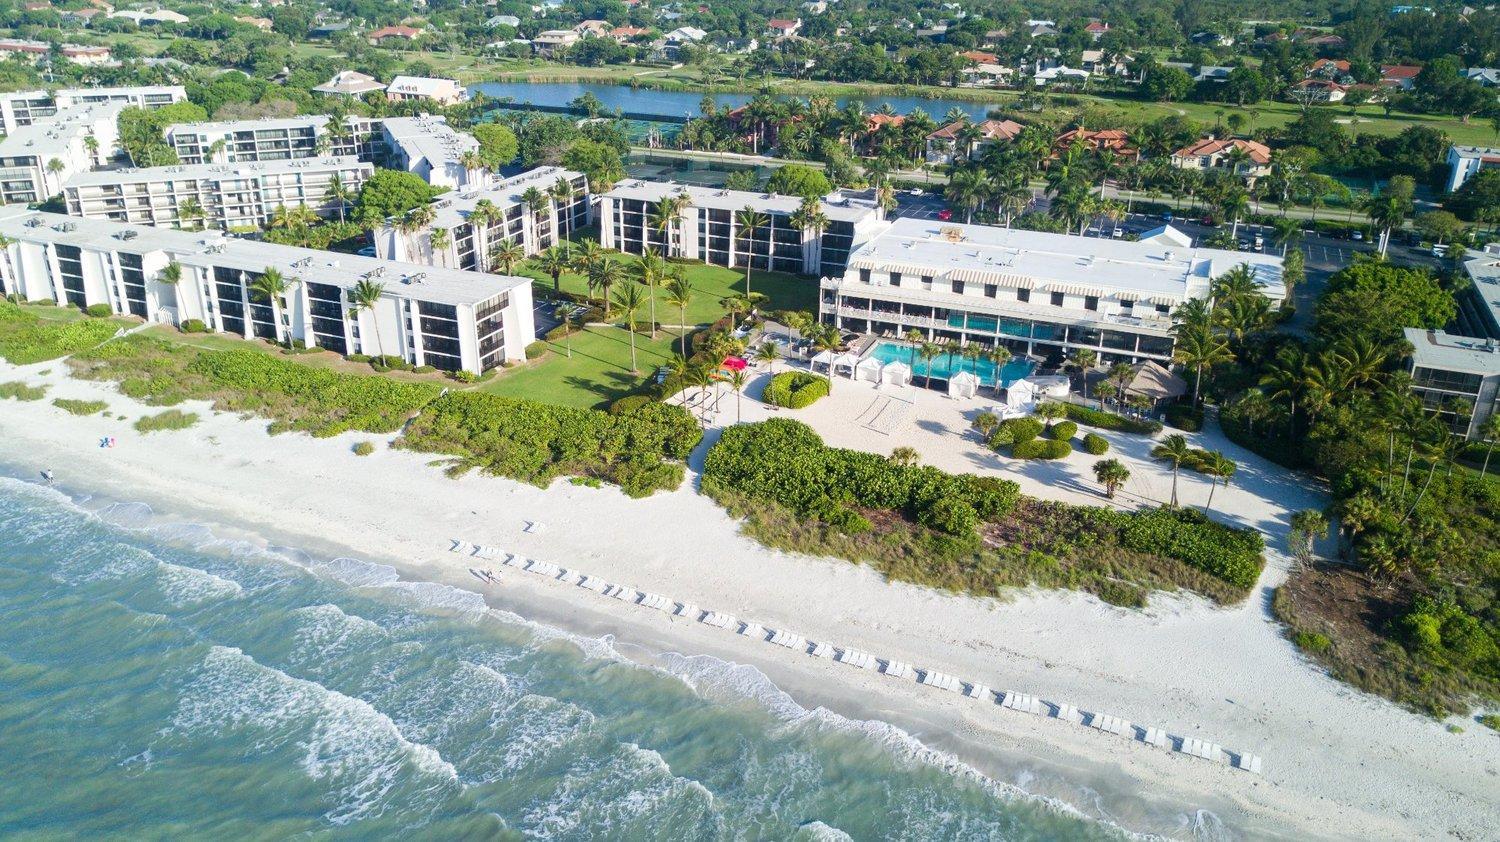 Sundial Beach Resort and Spa Sanibel FL Jobs